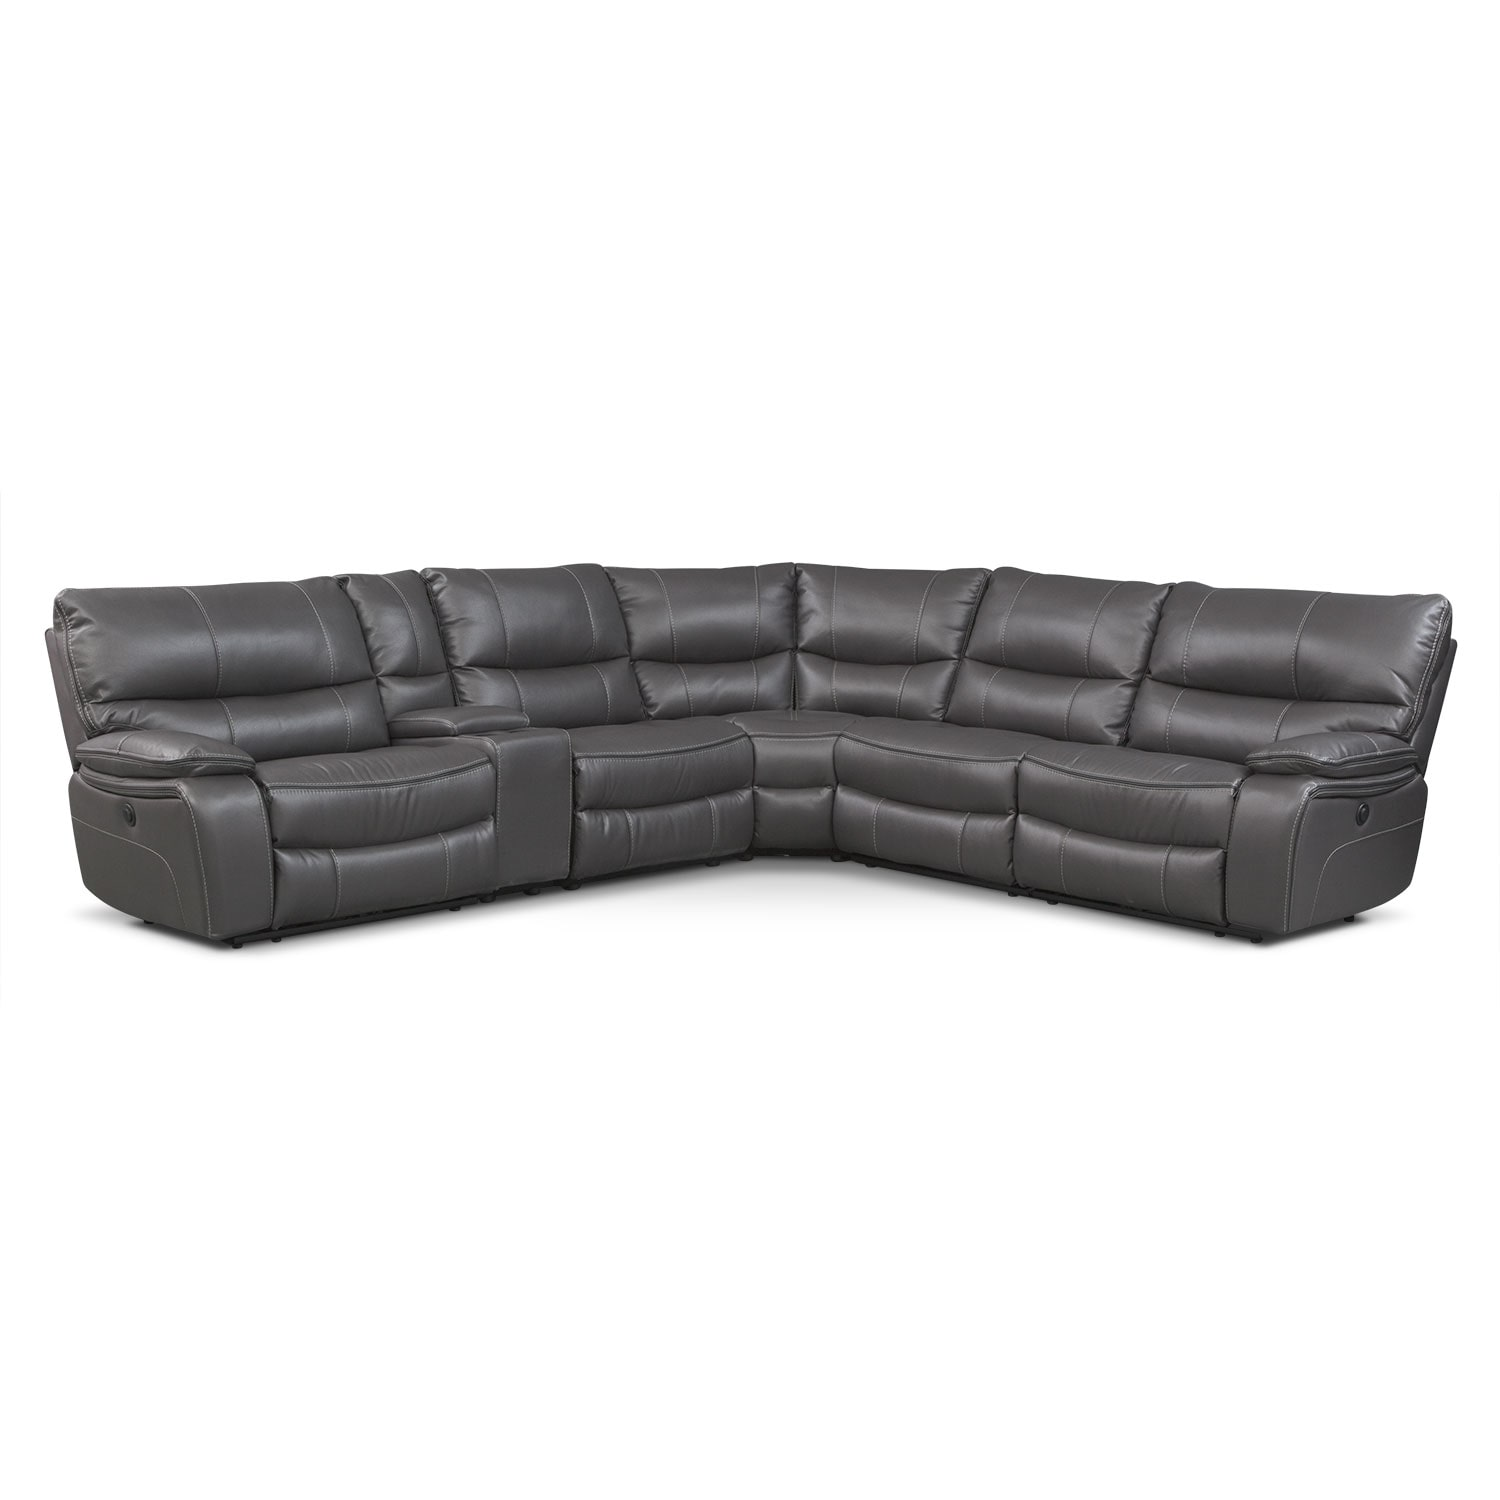 Orlando 6-Piece Power Reclining Sectional w/ 1 Stationary Chair - Gray